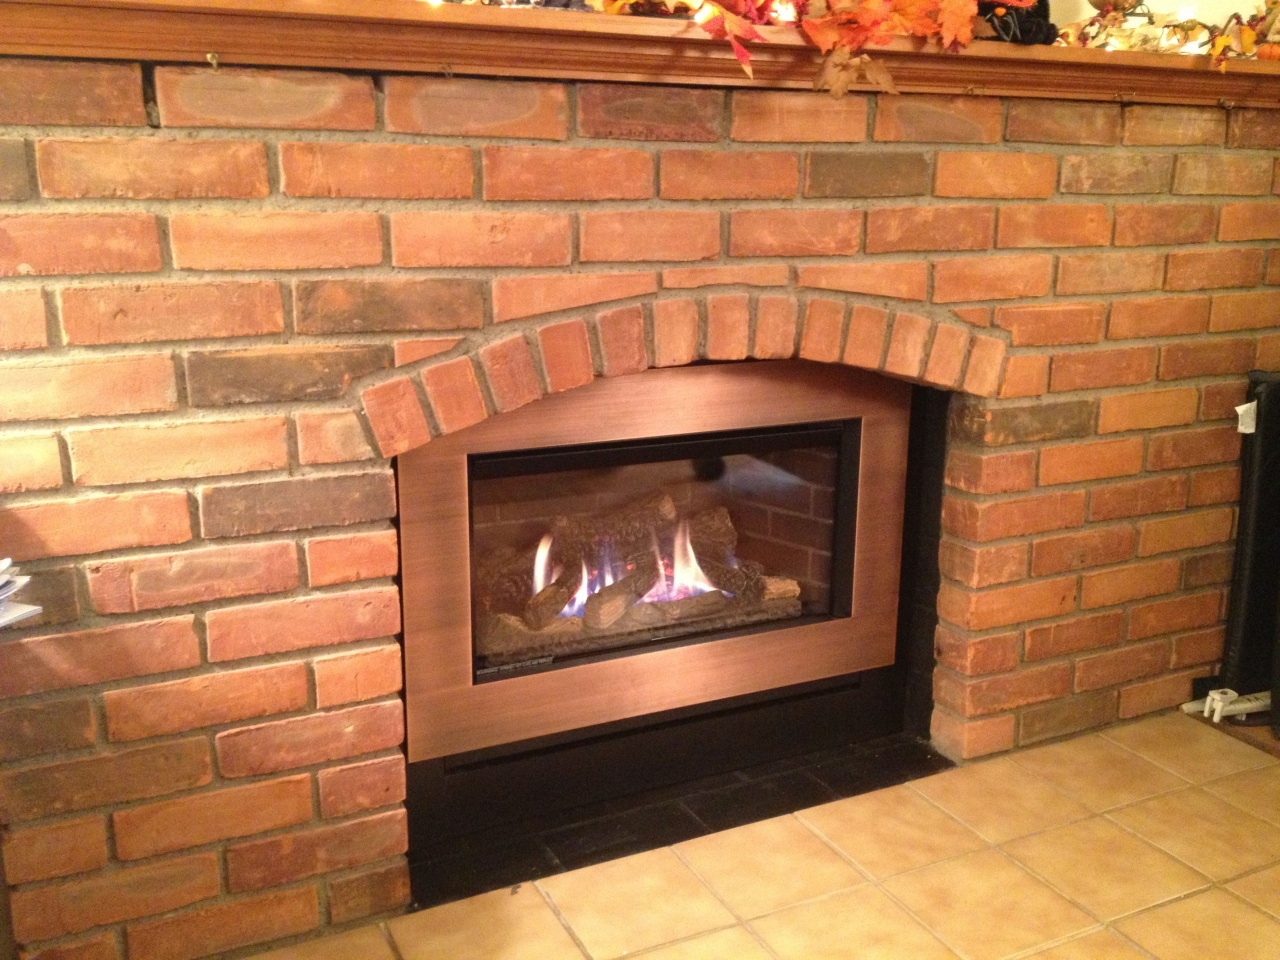 gas fireplace inserts near me pin on valor radiant gas fireplaces midwest dealer from gas fireplace inserts near me 1